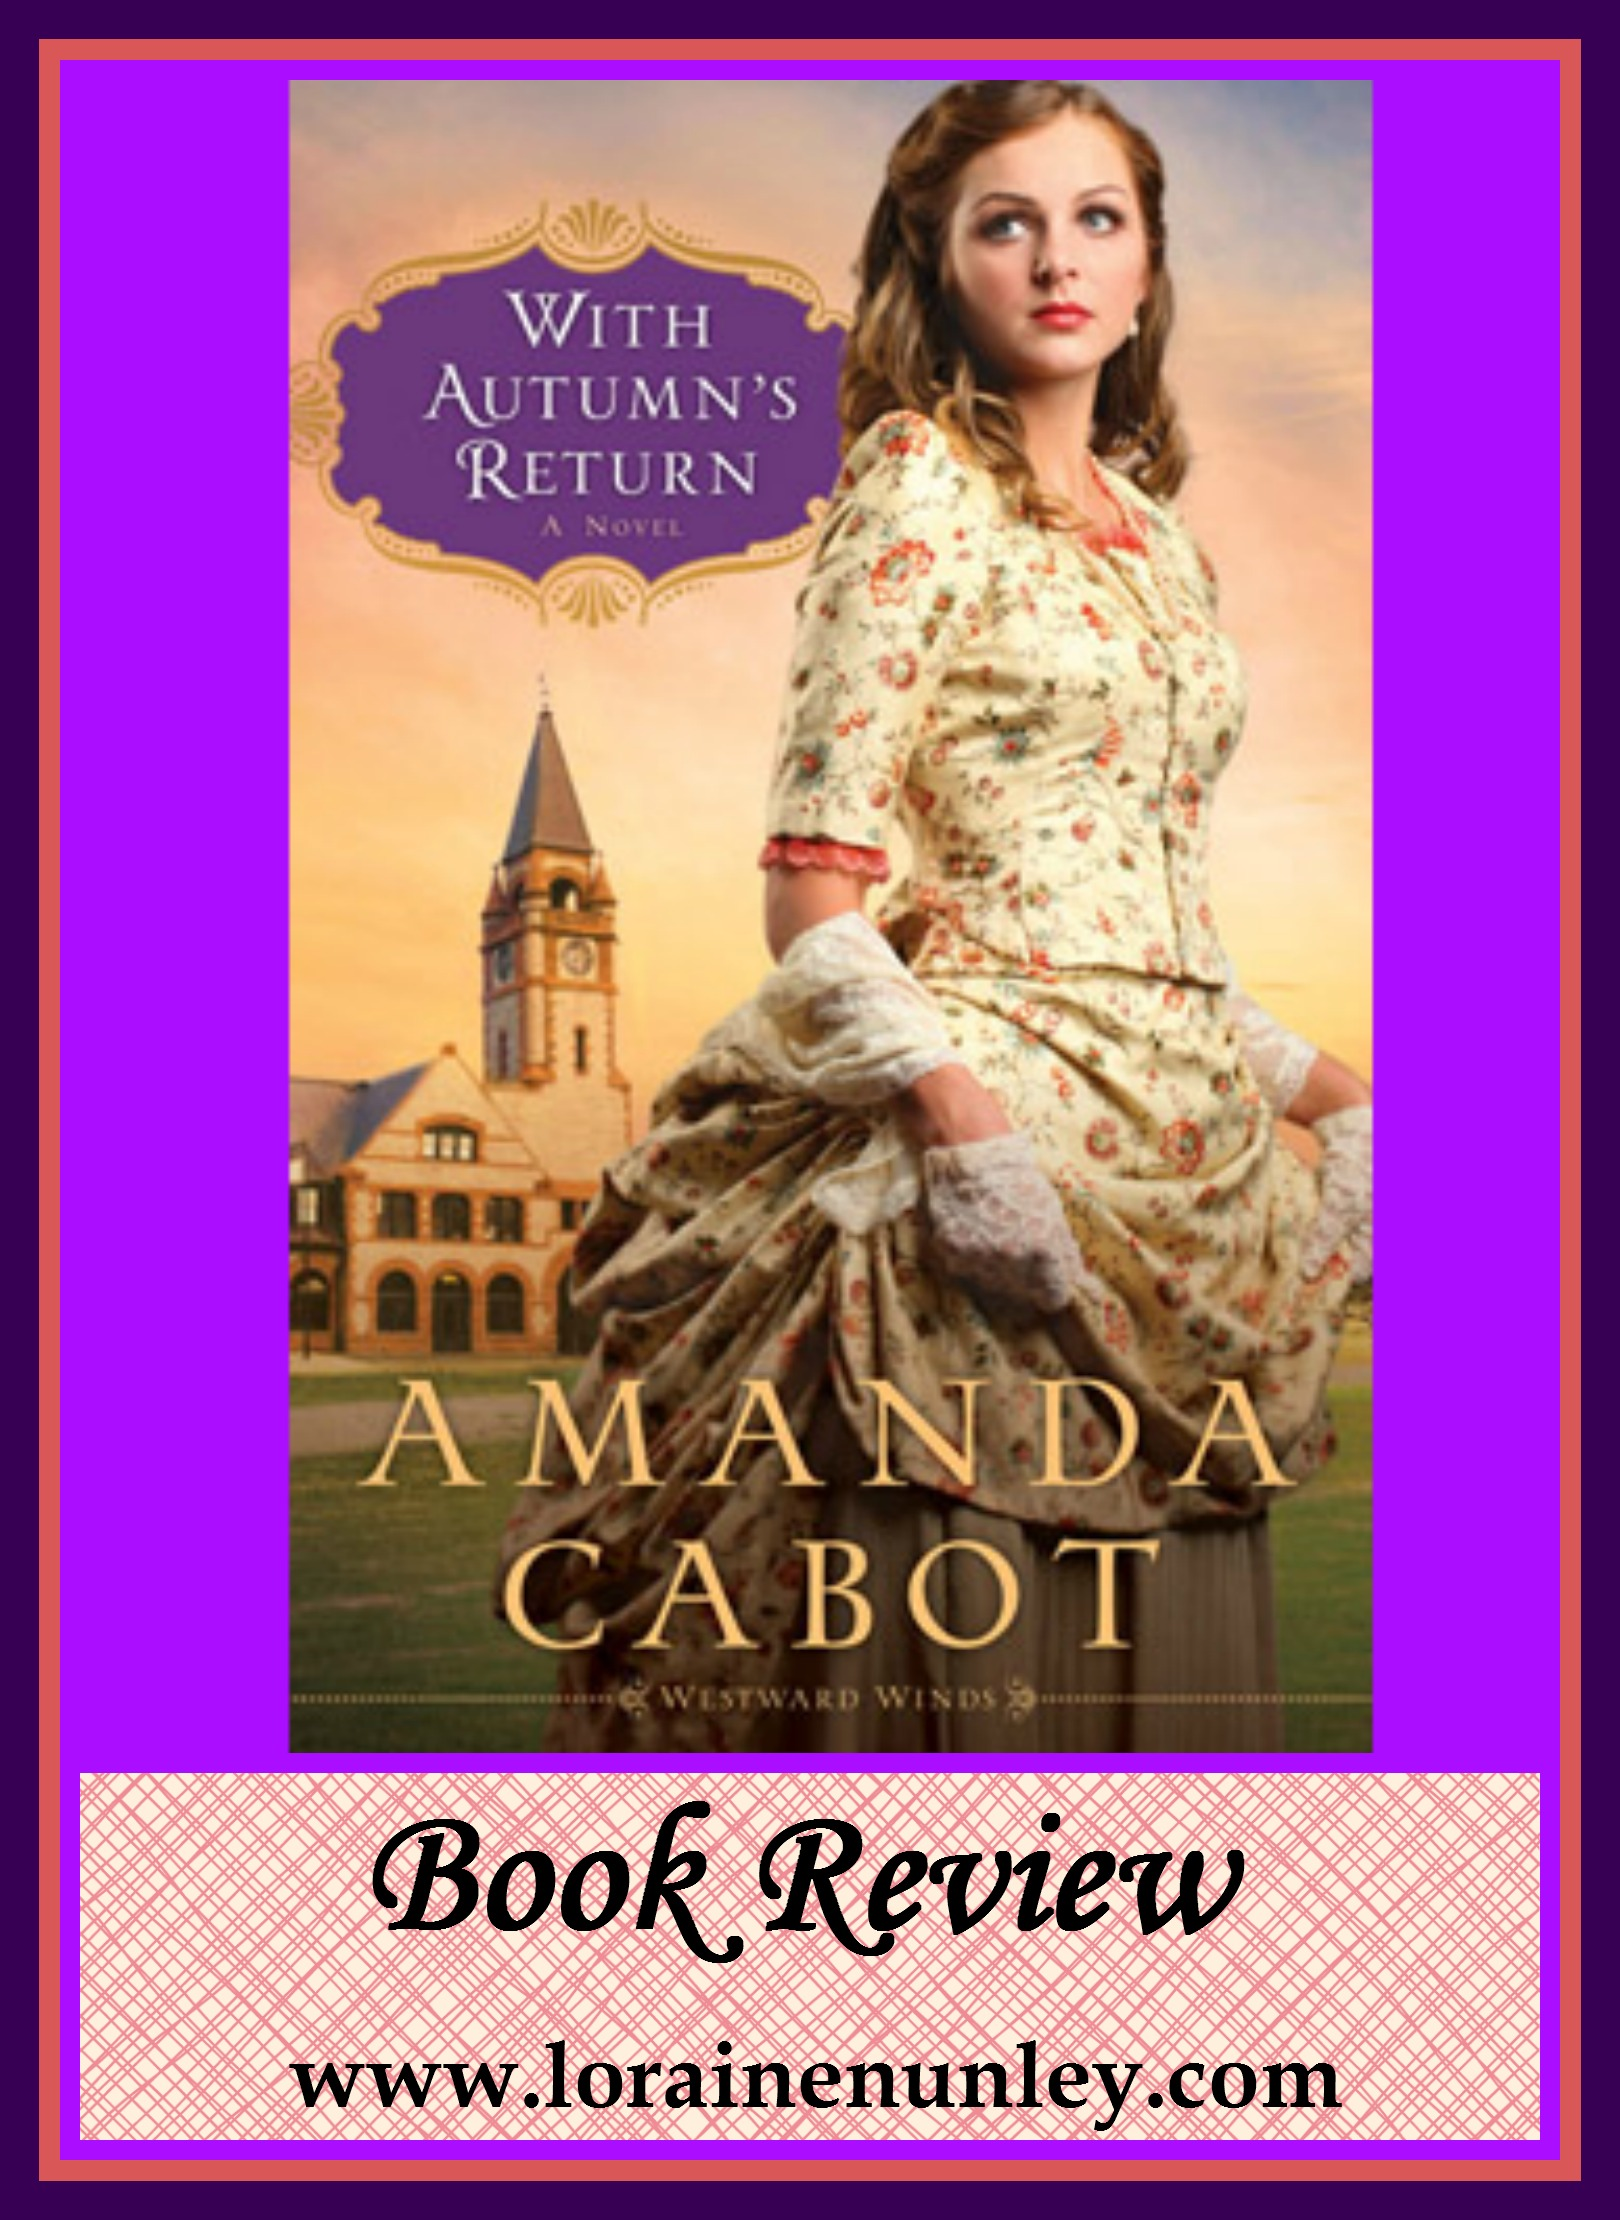 Book Review: With Autumn's Return by Amanda Cabot